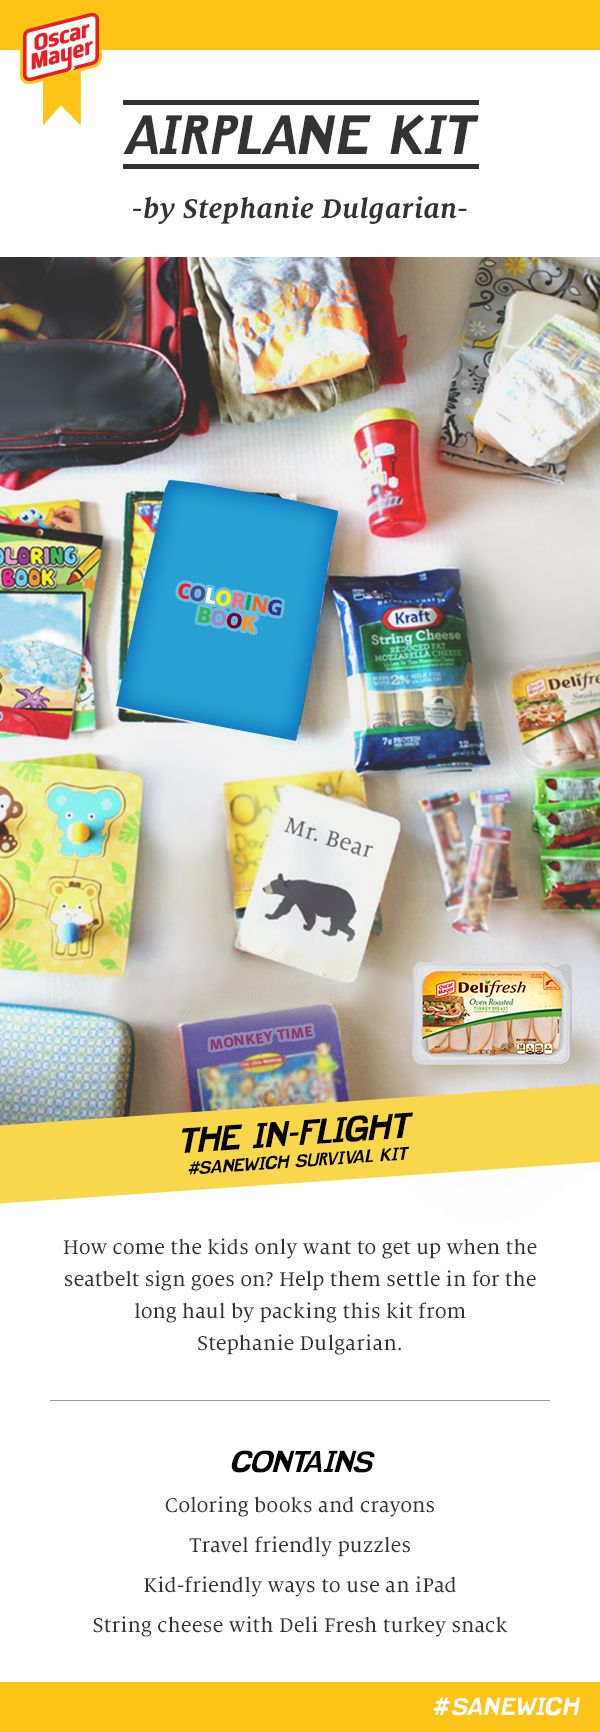 How come the kids only want to get up when the seatbelt sign goes on? Help them settle in for the long haul by packing this kit from Stephanie Dulgarian. Contains: Coloring books and crayons, travel friendly puzzles, kid-friendly ways to use an iPad, string cheese with Deli Fresh turkey snack